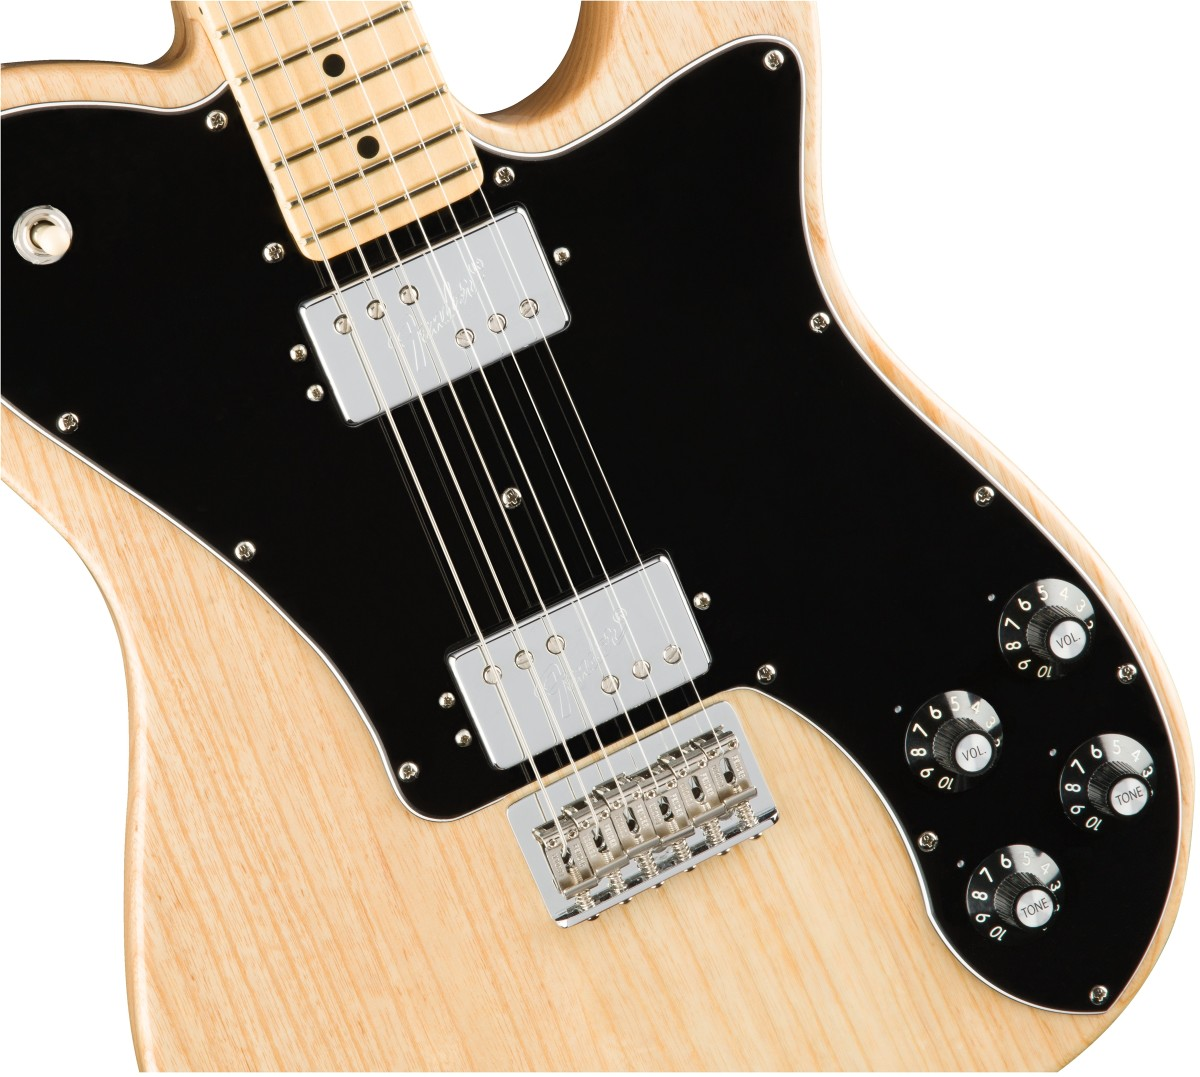 The Fender American Professional Telecaster Deluxe HH ShawBucker vs. the Gibson Les Paul Studio Traditional